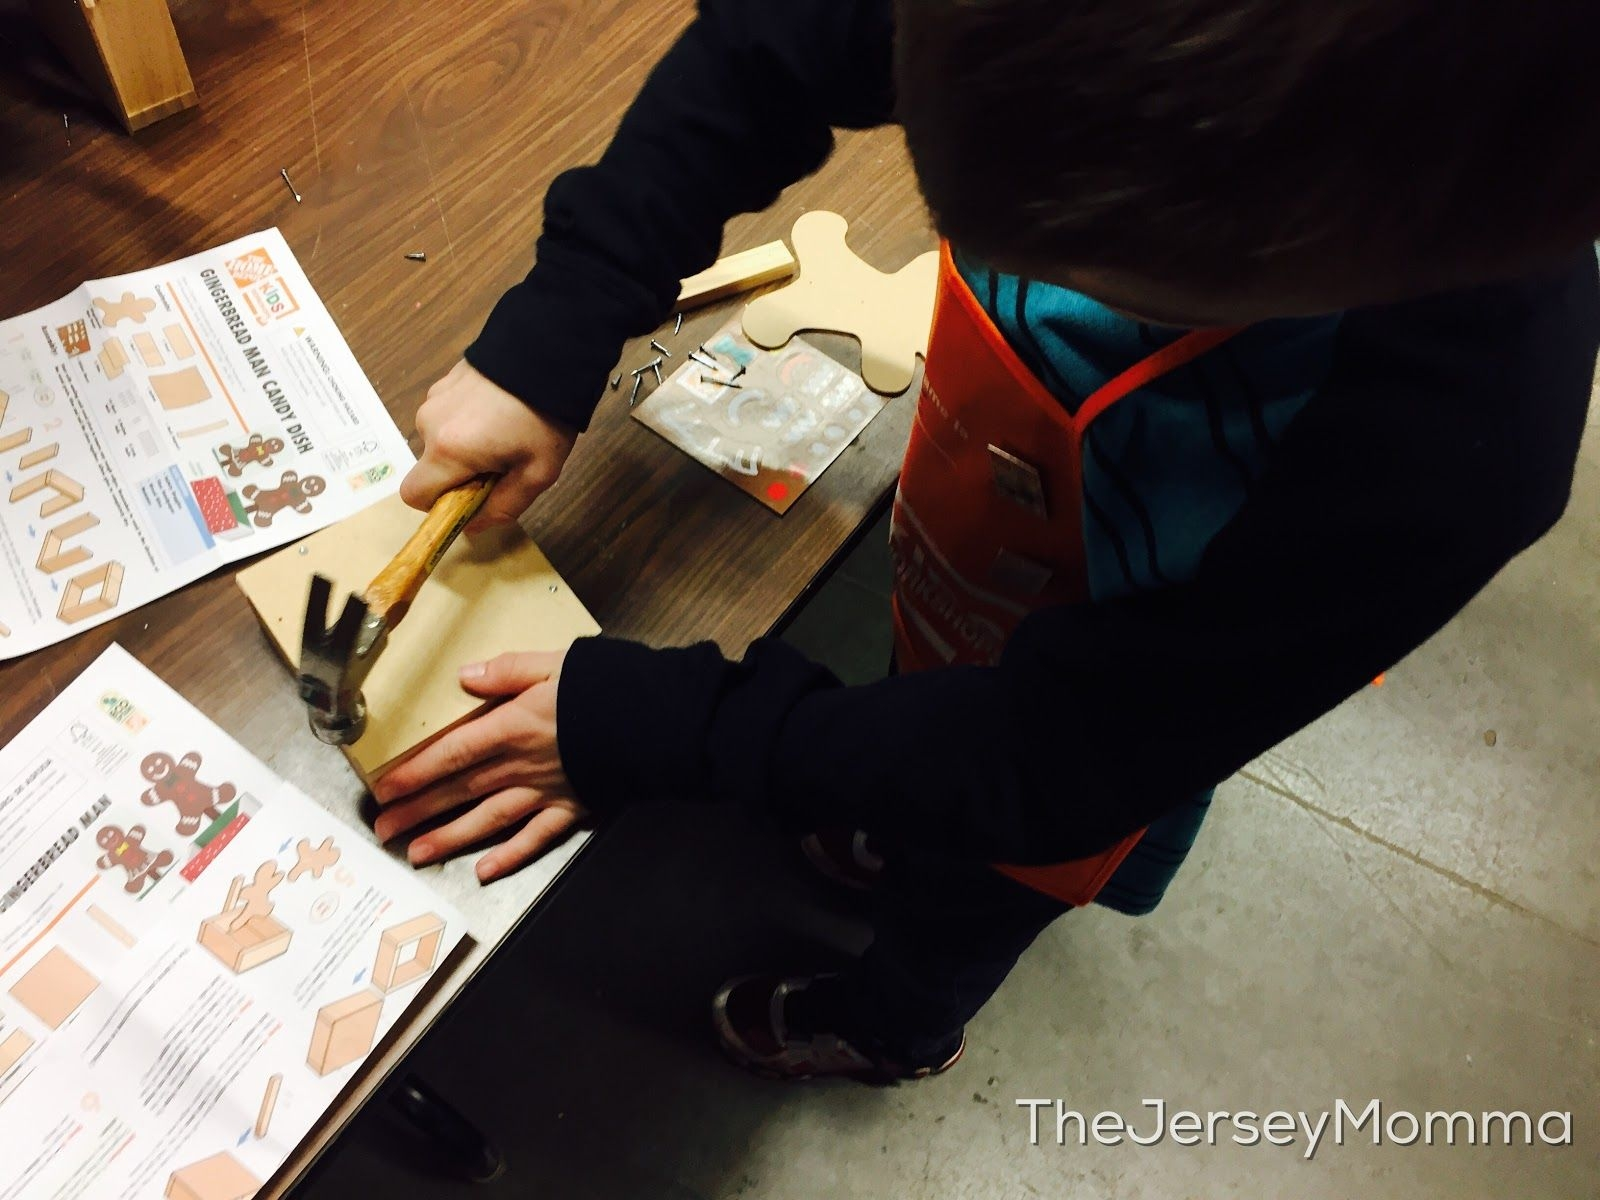 Free Home Depot Workshops For Kids! | The Jersey Momma